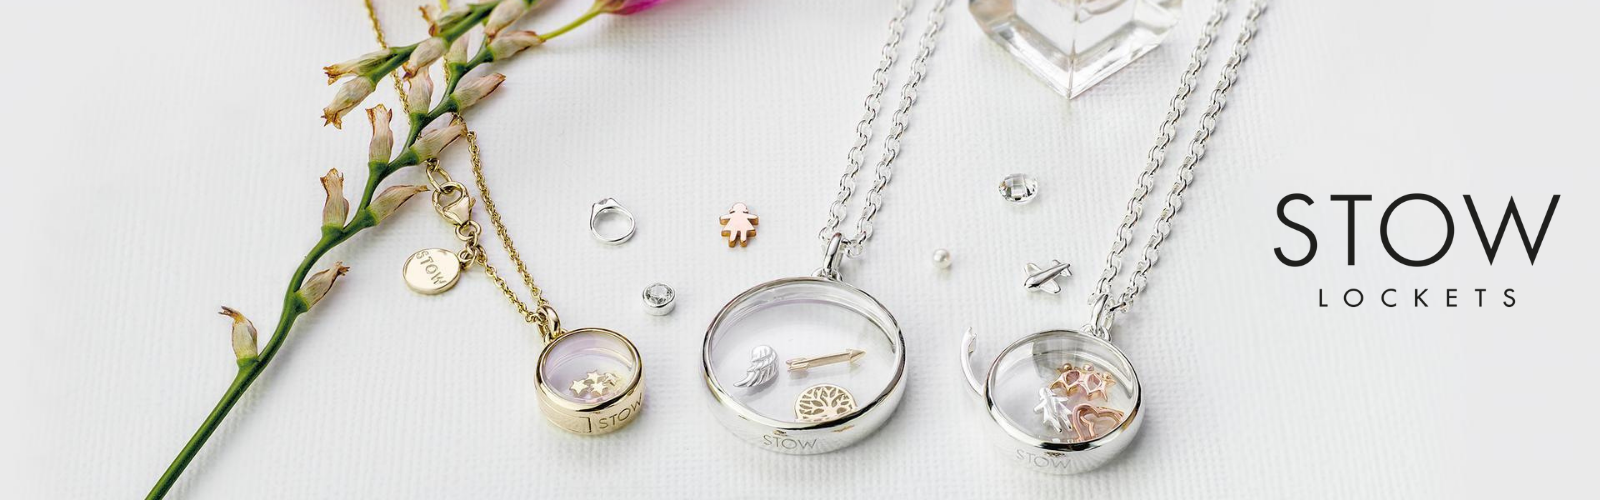 Stow Lockets and Charms